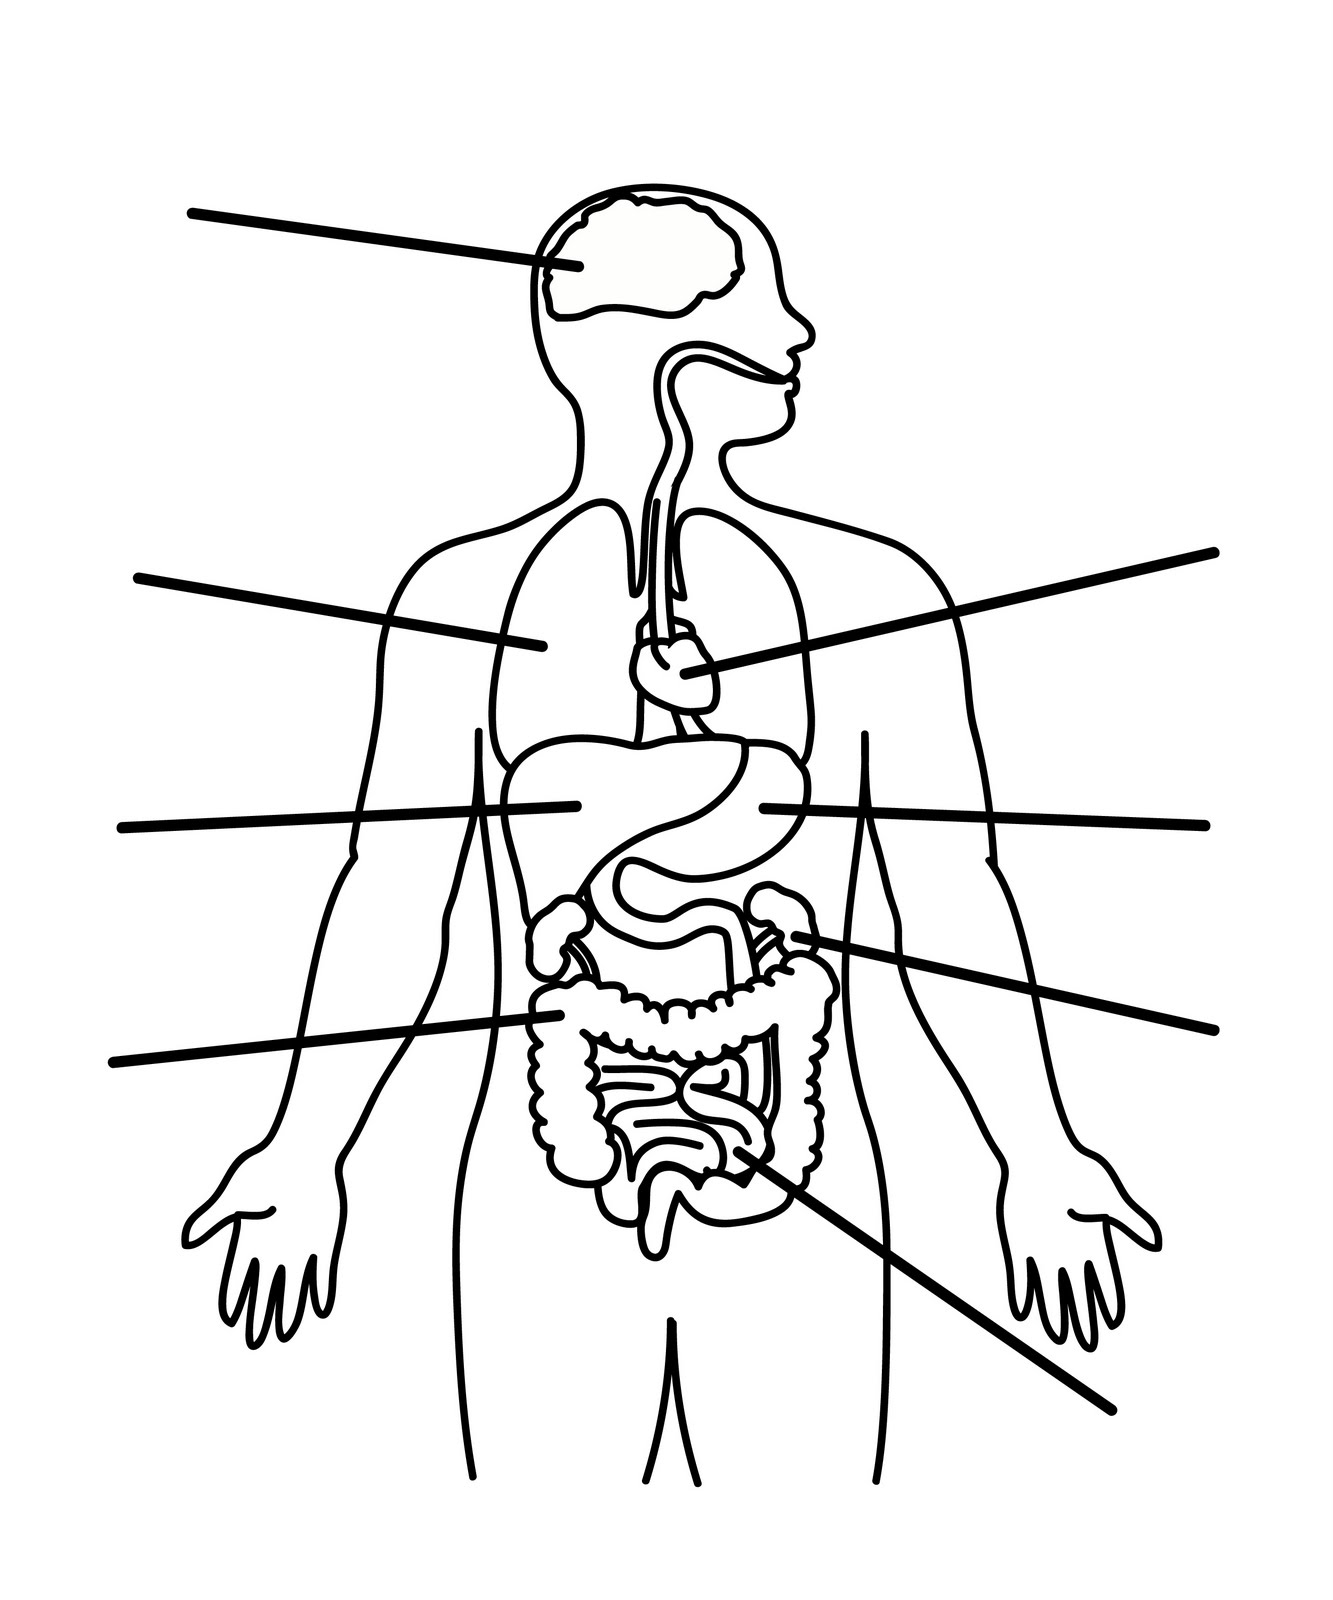 1333x1600 Human Body Outline Printable